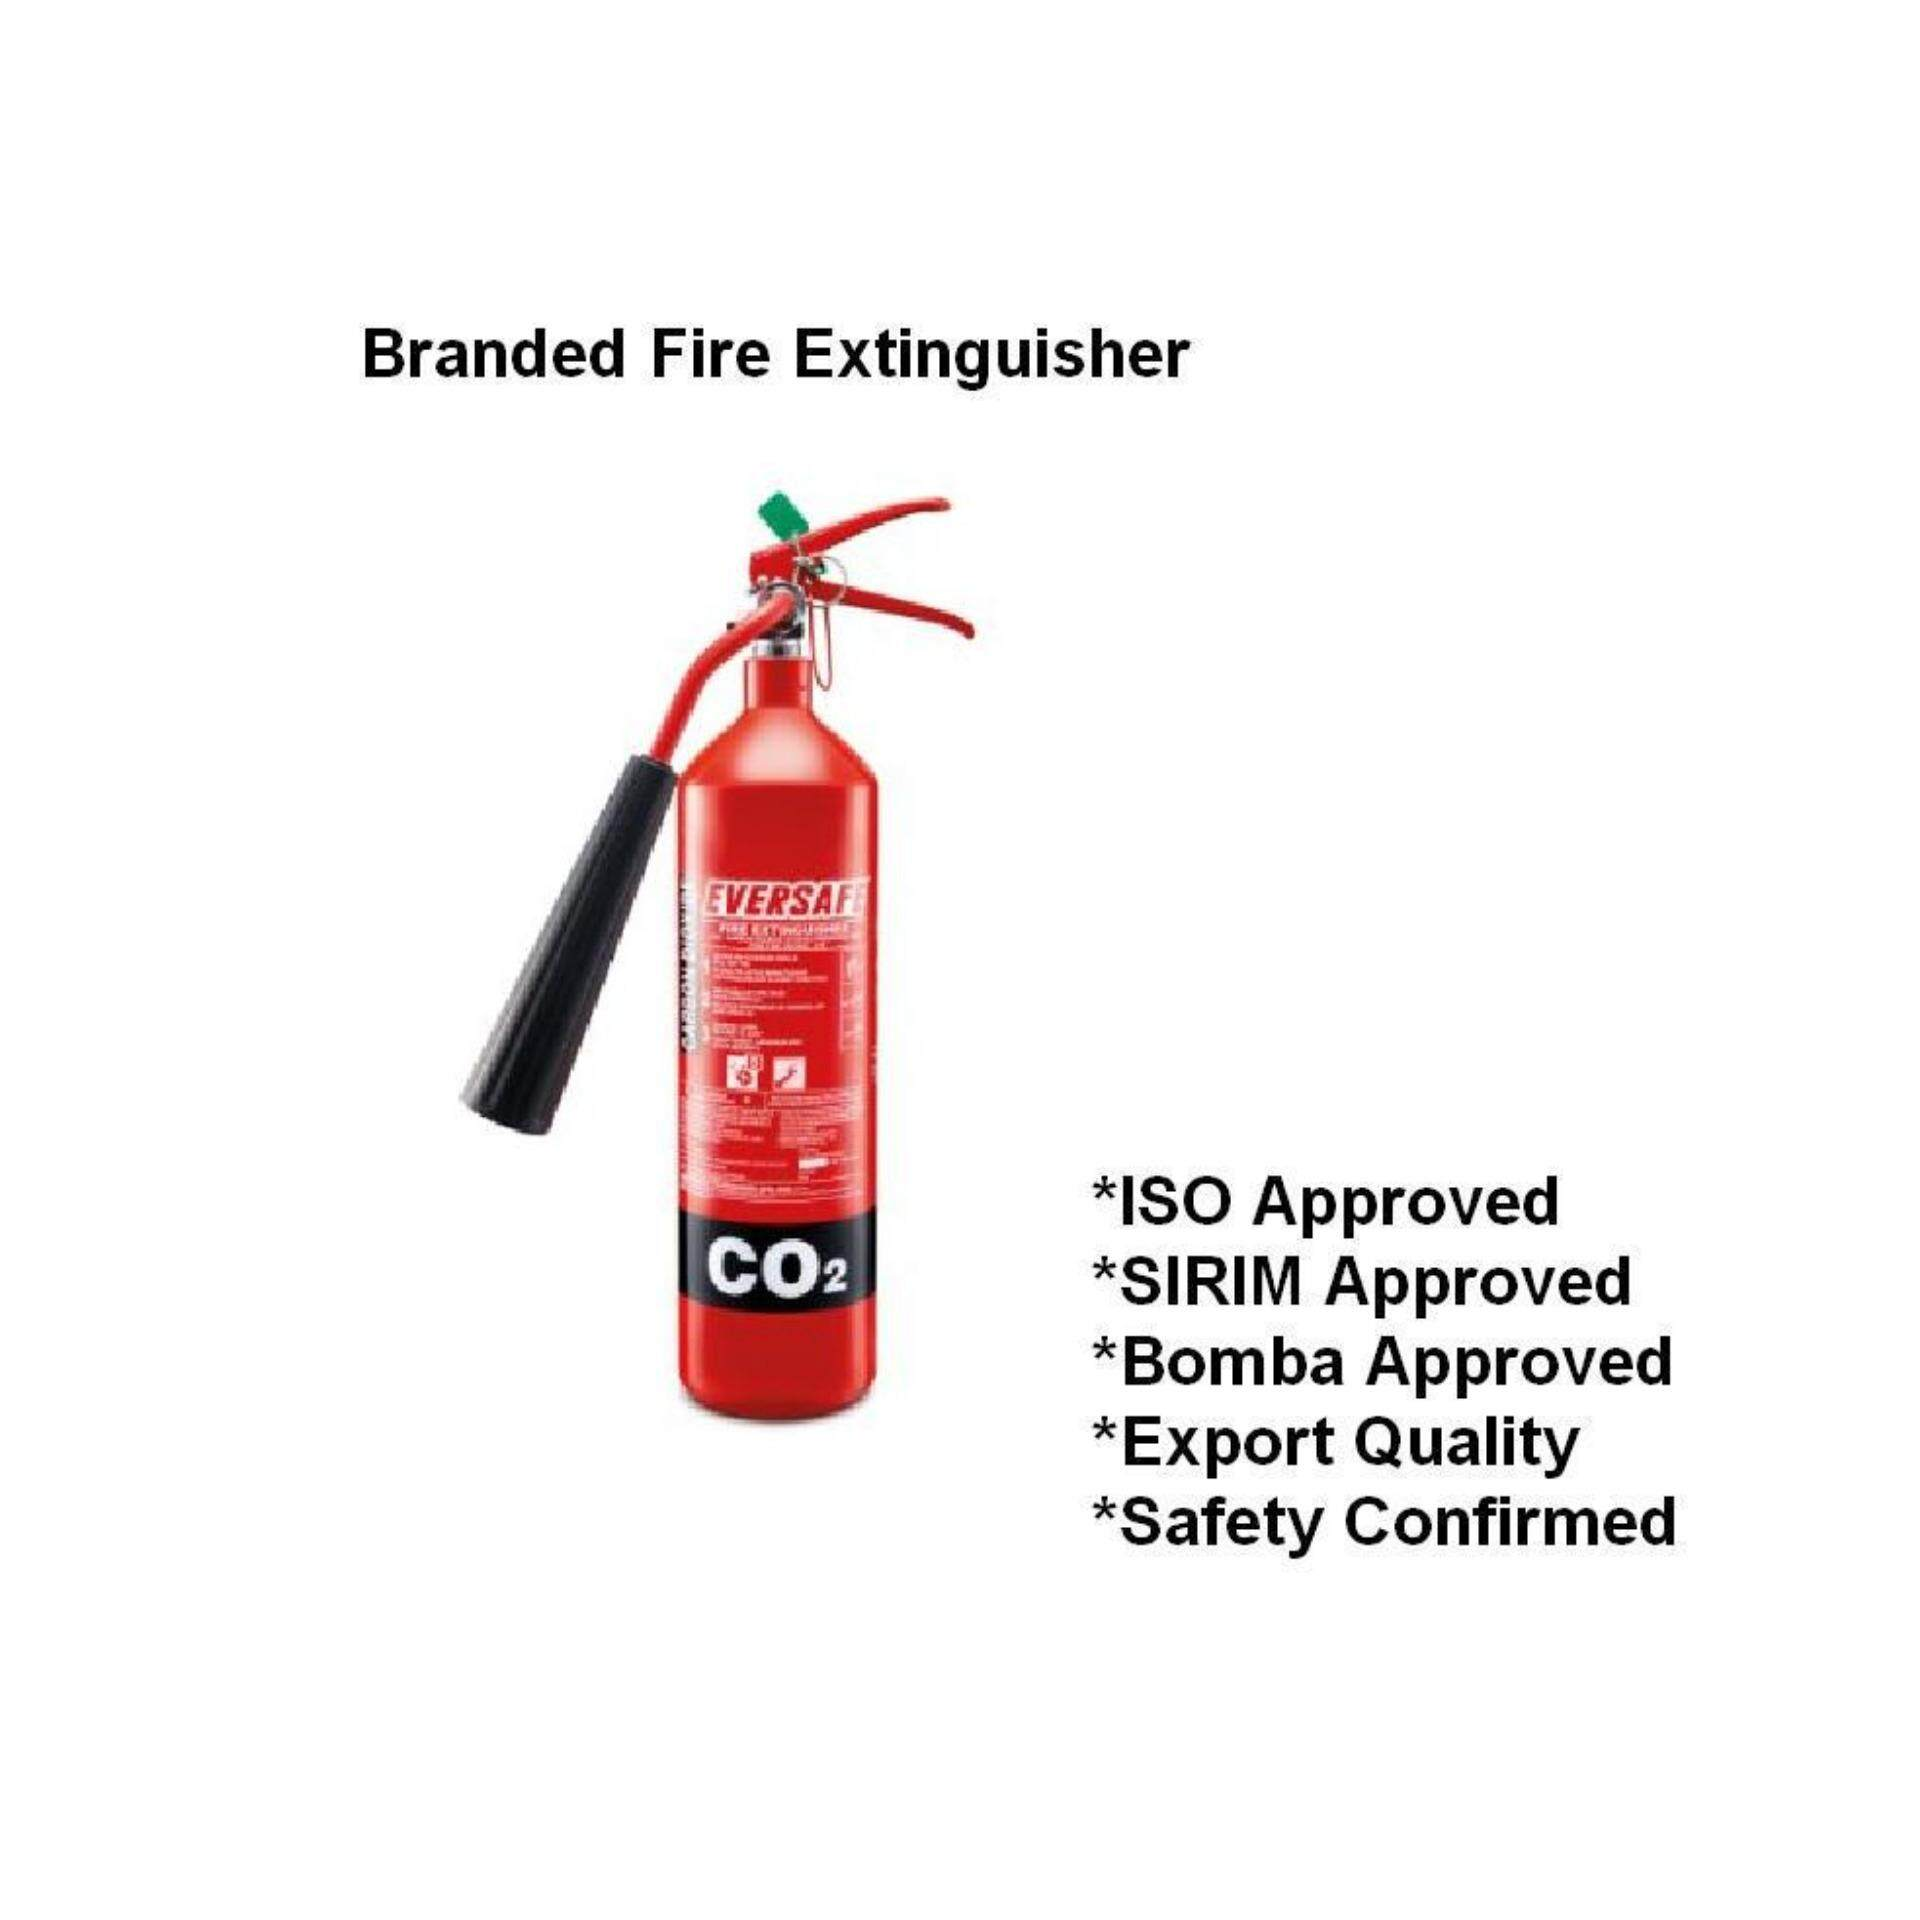 2kg CO2 branded fire extinguisher for house kitchen and electrical board server room(SIRIM and BOMBA Approved)